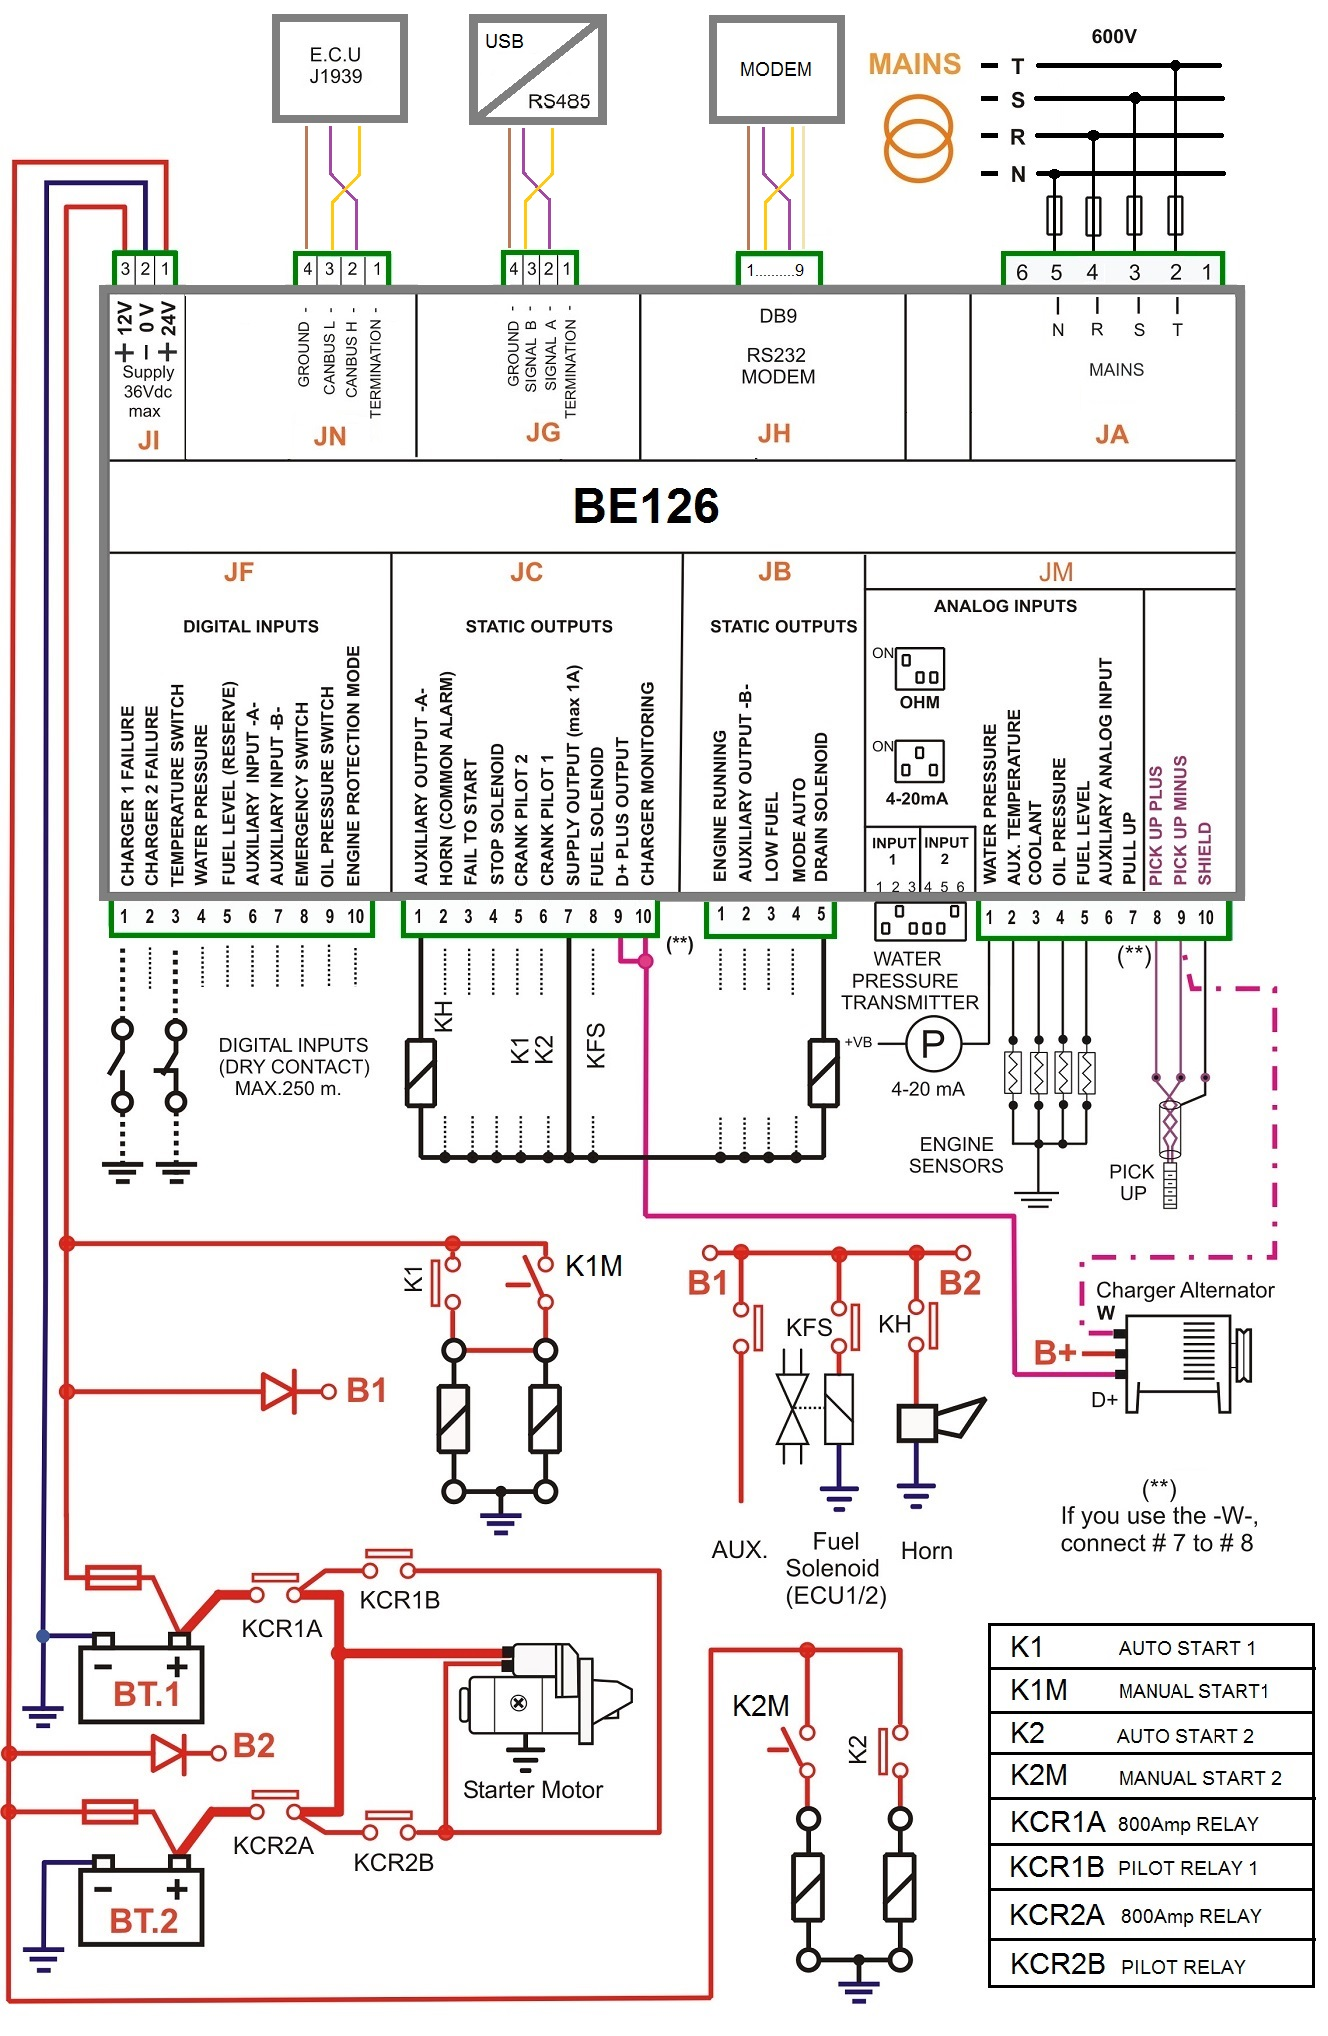 Spa Heater Relay Circuit Board On Gecko Circuit Board Wiring Diagram